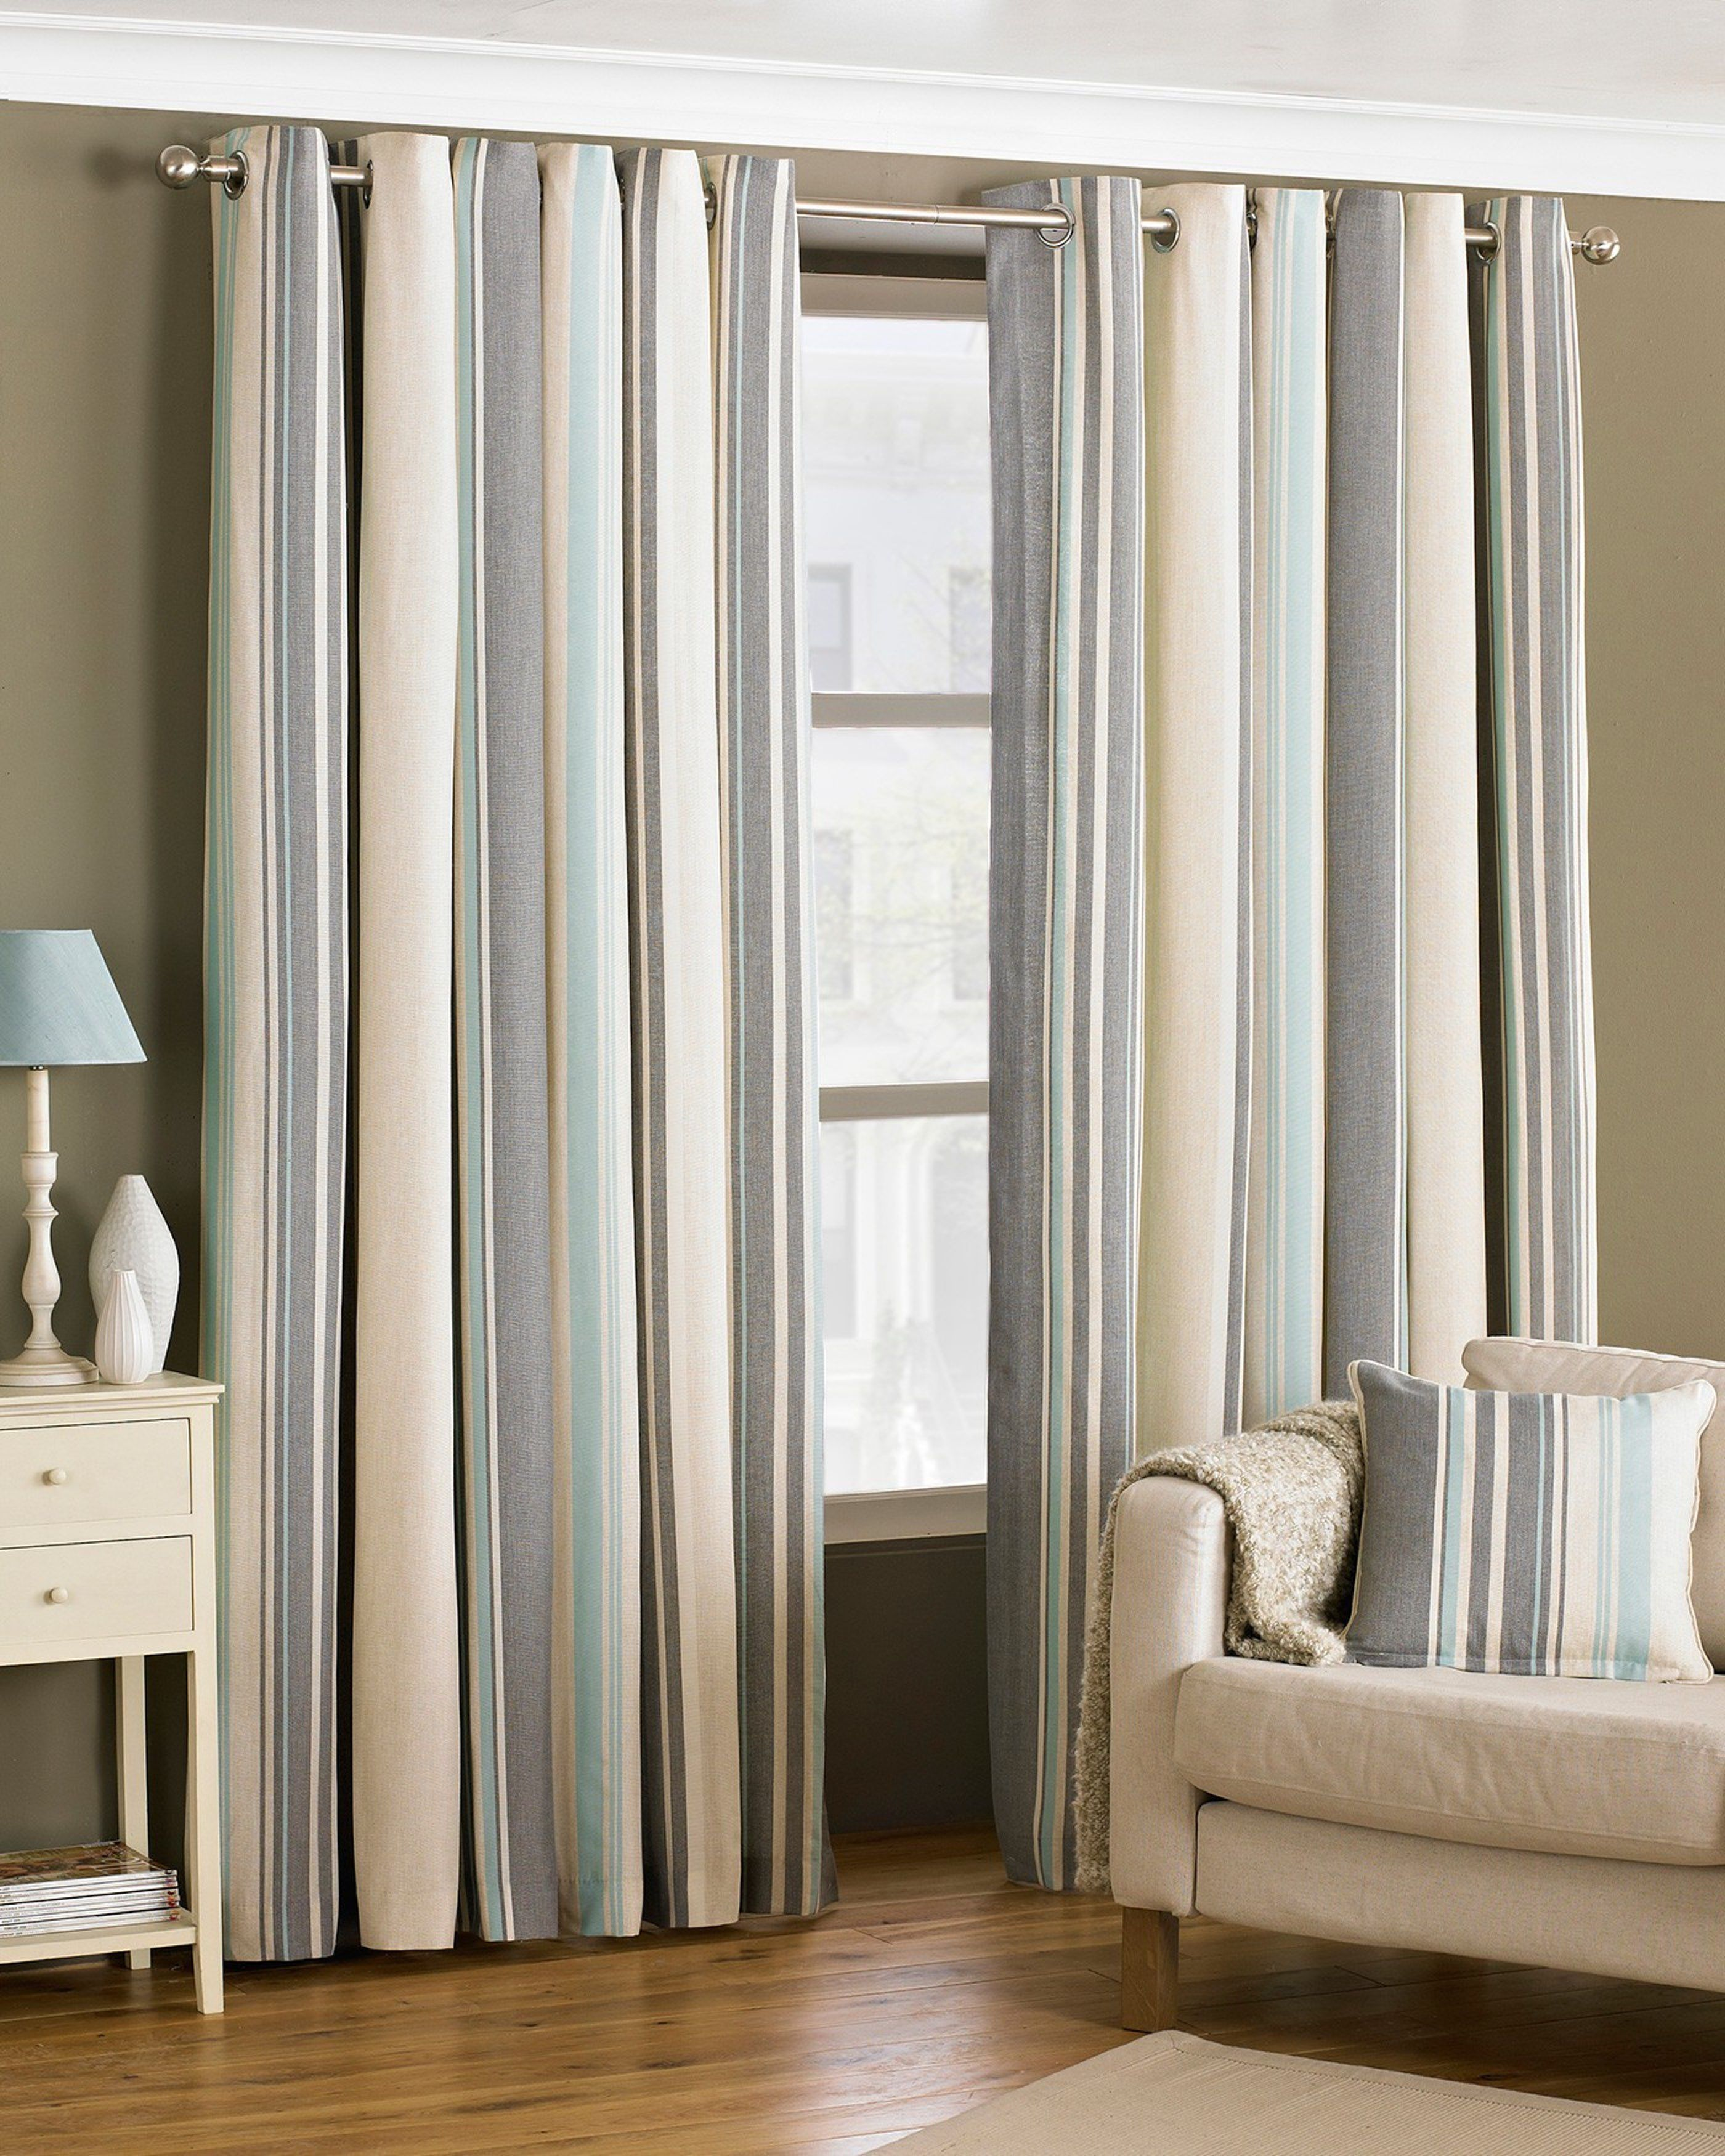 Furniture Living Room Decor Gray Duck Egg Blue Curtains Brown